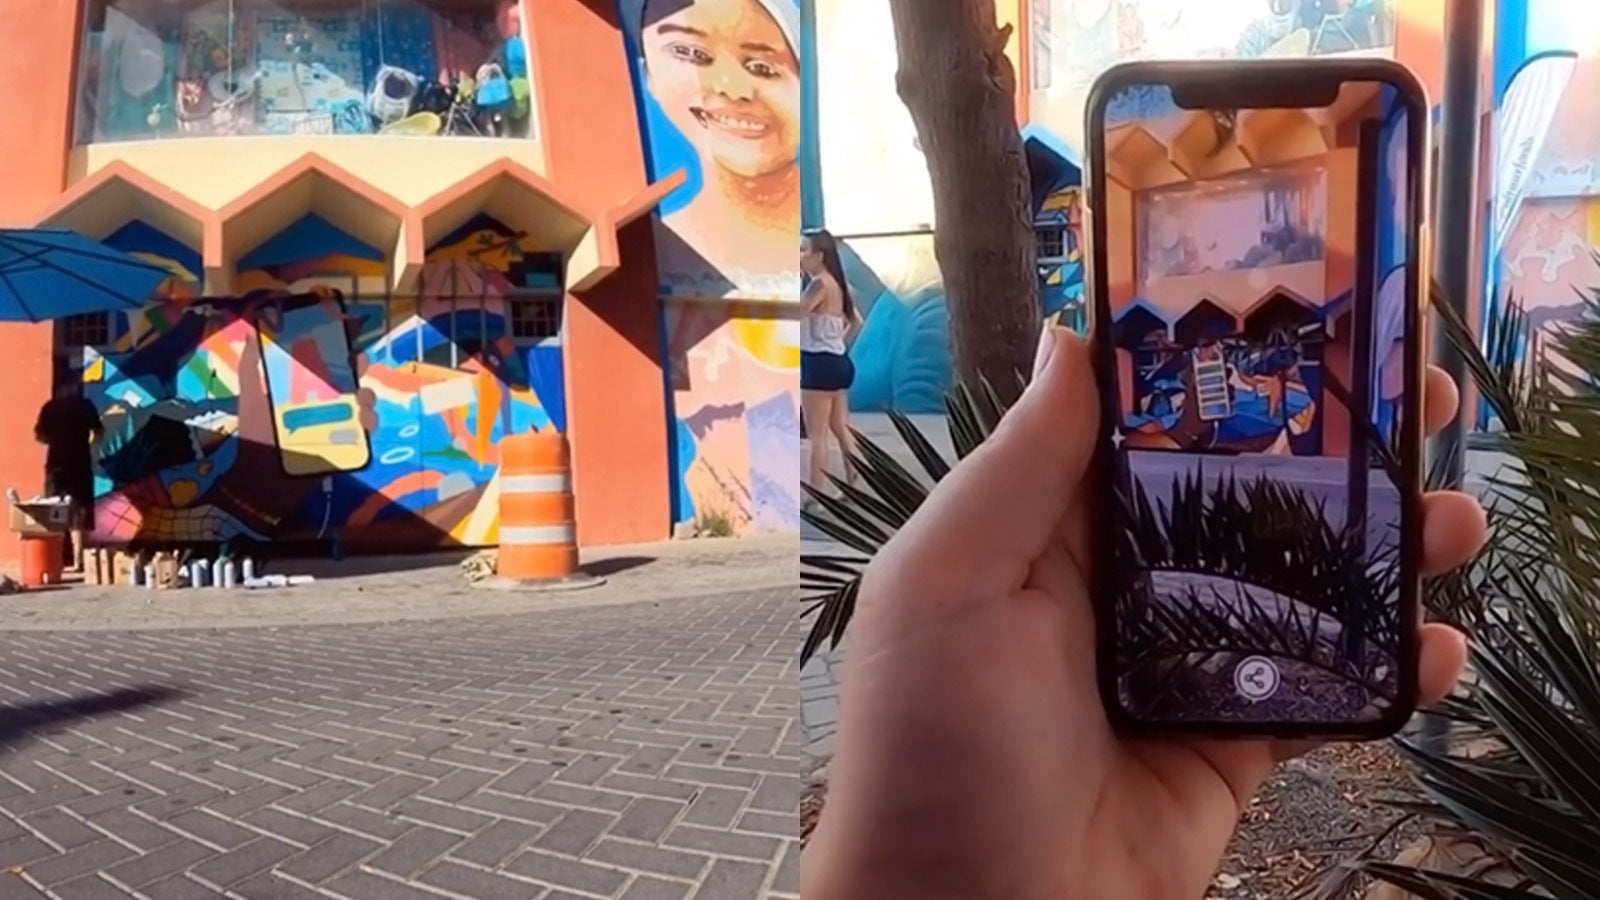 Aruba - live art print at Aruba - Augmented reality